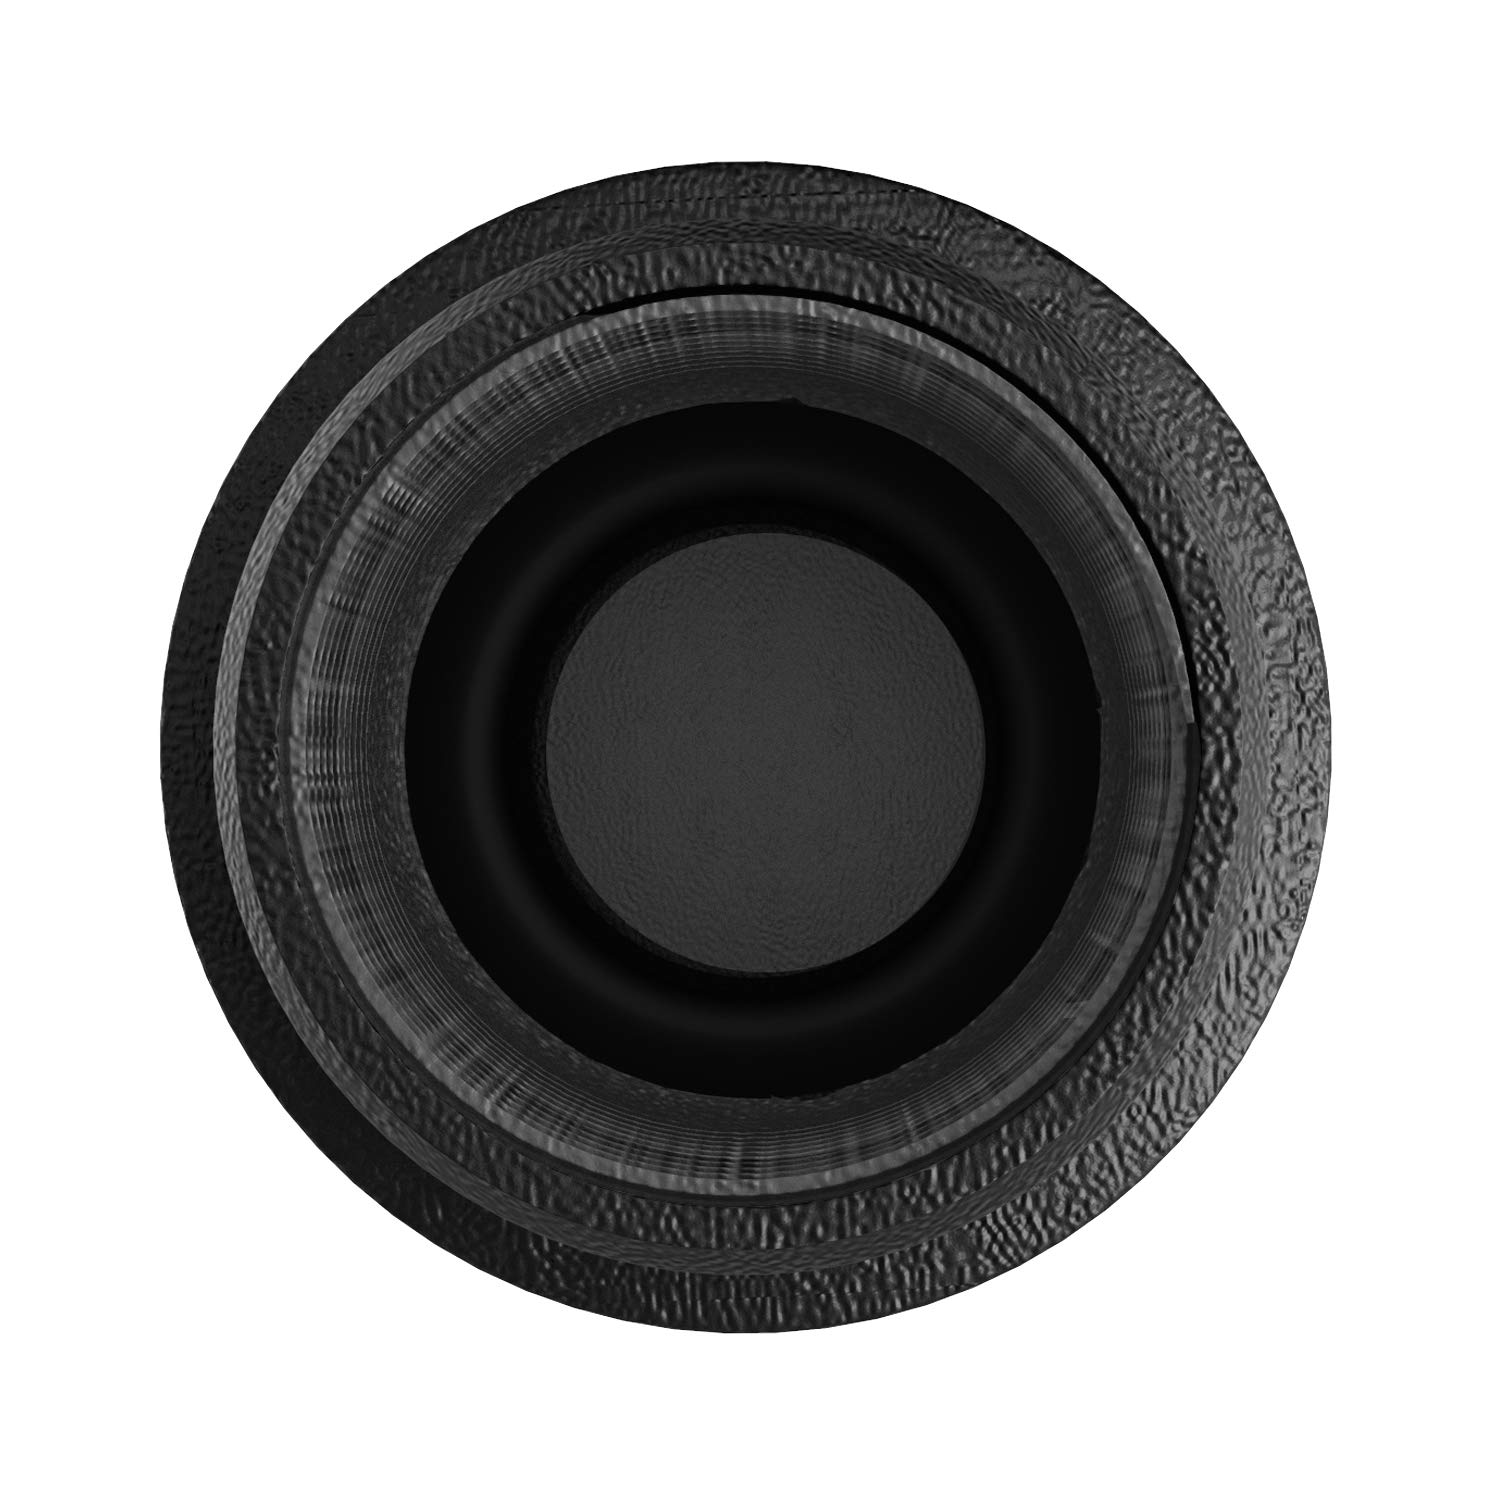 SAMIKIVA Aluminum Tire Valve Stem Caps Bike and Bicycle Trucks Dust Proof Cover Universal fit for Cars Motorcycles Metal SUVs Metal with Rubber Ring